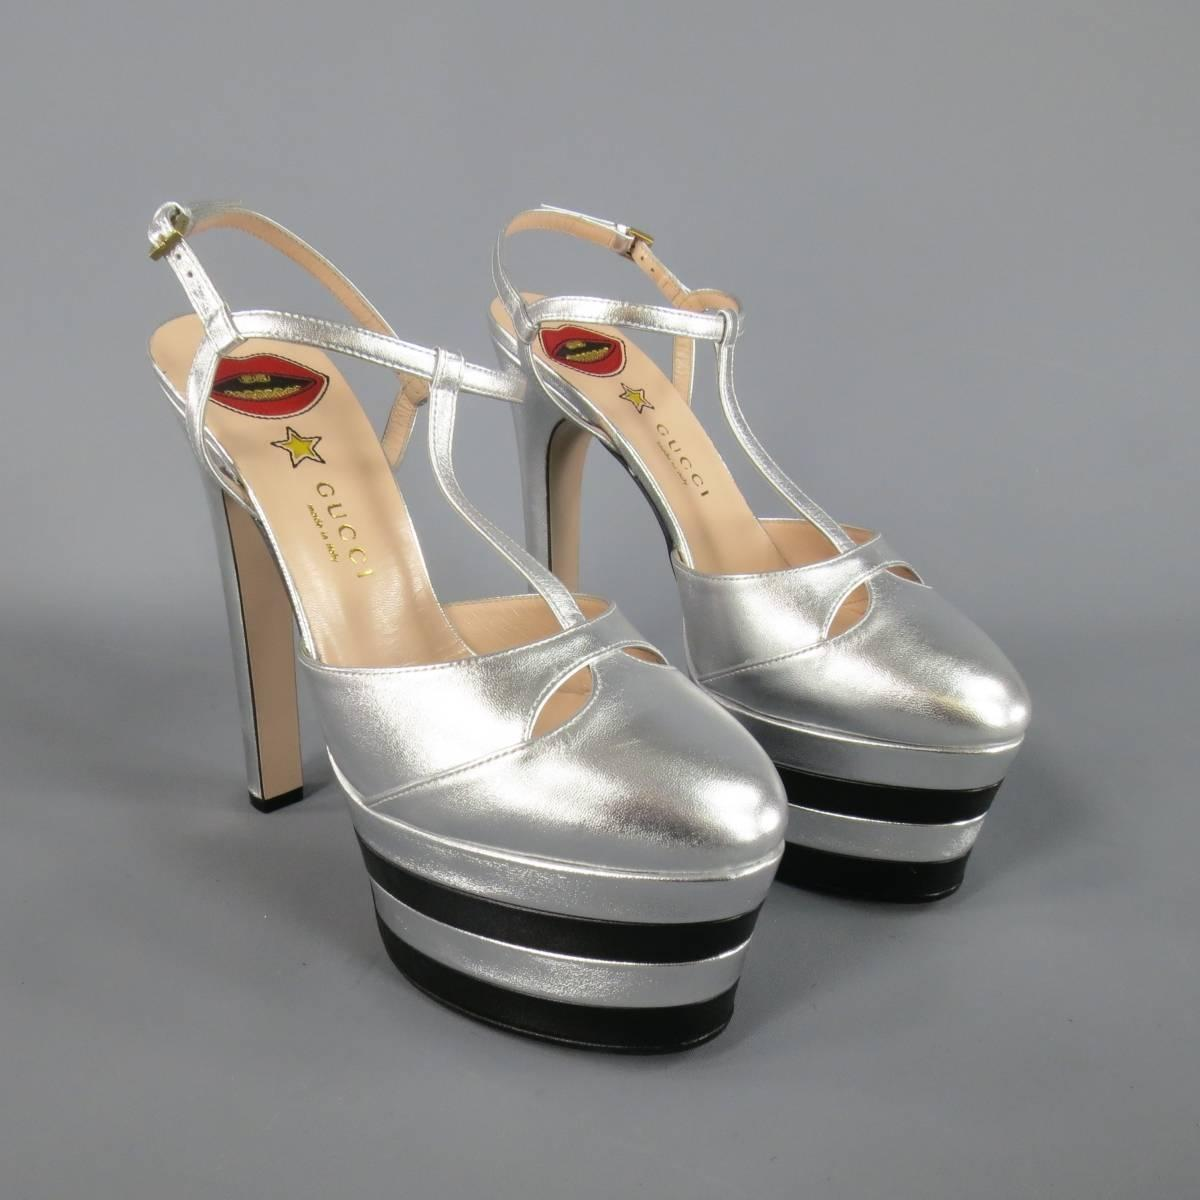 5771ab52d20 GUCCI Size 8.5 Silver and Black Leather T Strap Striped ANGEL Platform Pumps  at 1stdibs